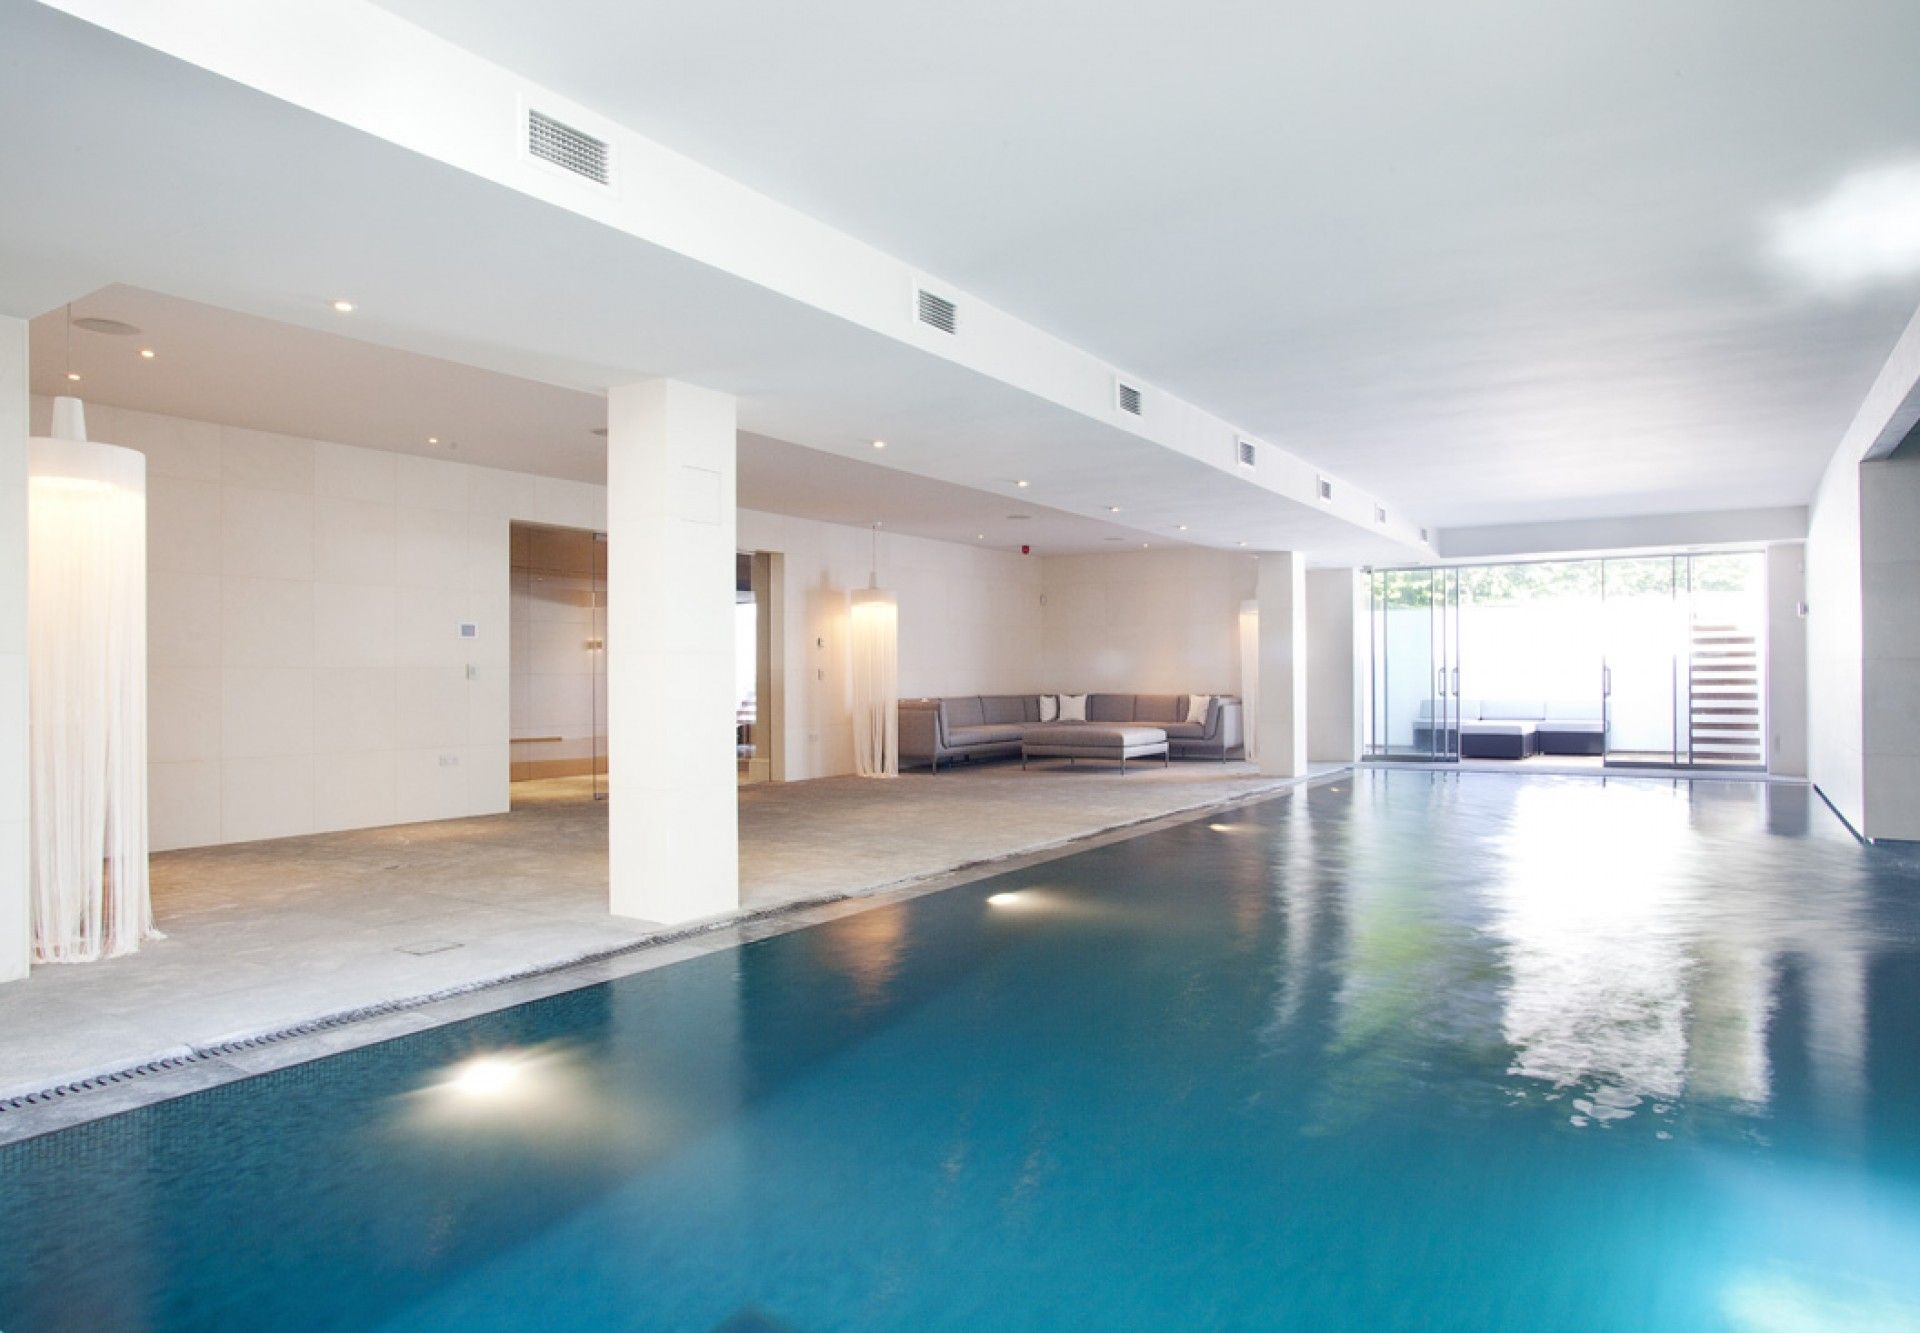 Indoor basement swimming pool wimbledon swimming pool for Basement swimming pool ideas